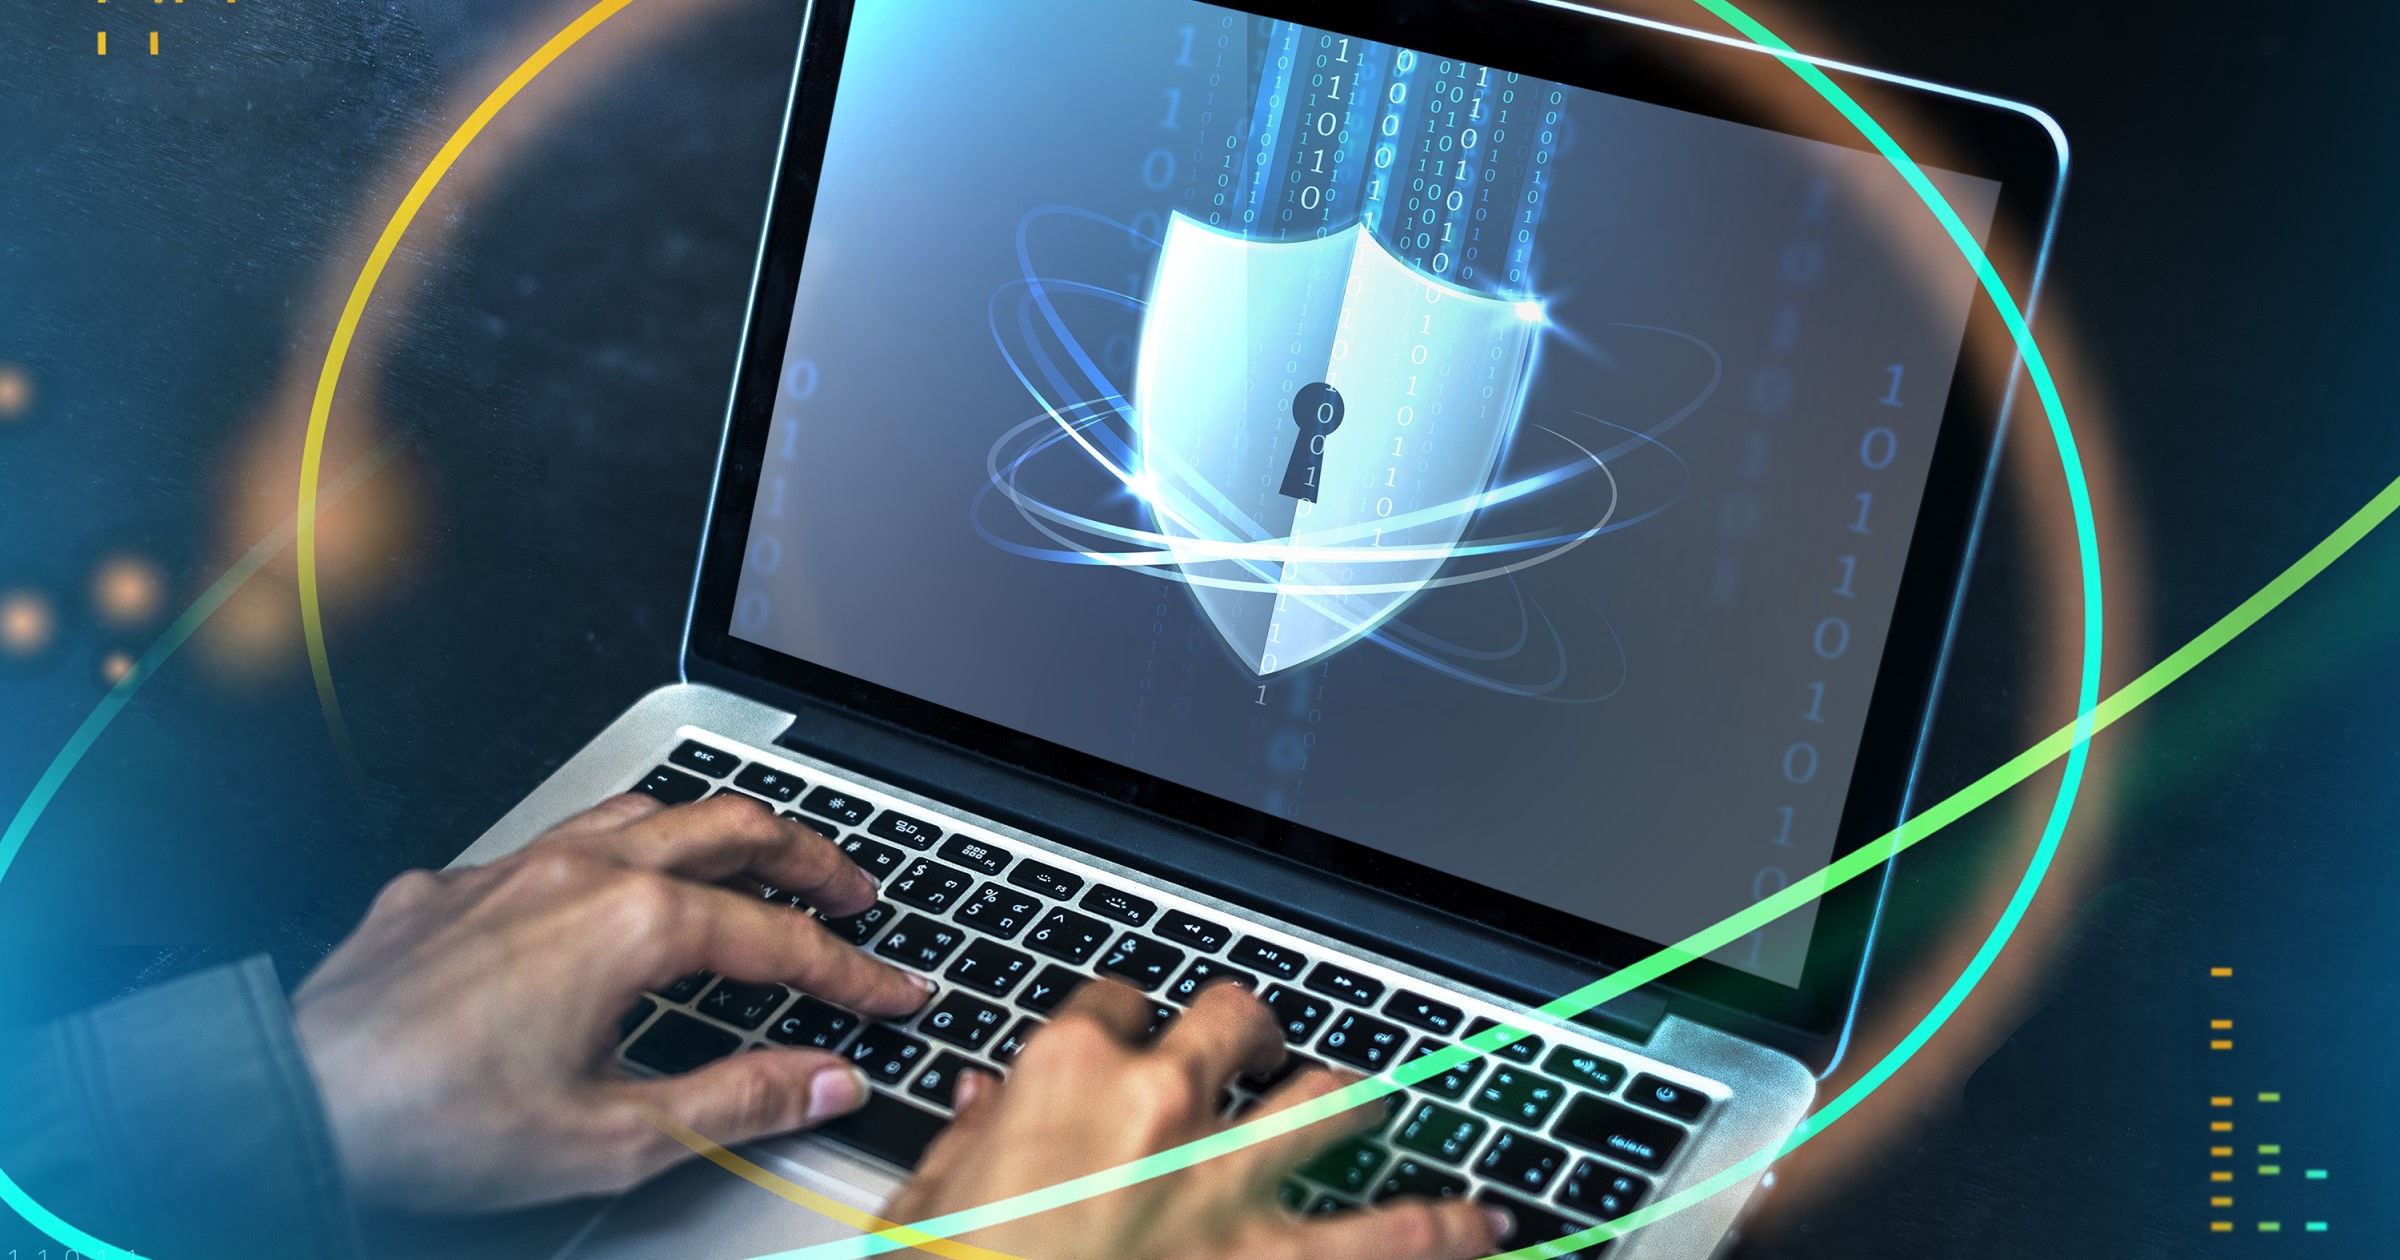 Strengthen Your Company's Security with Secure Score